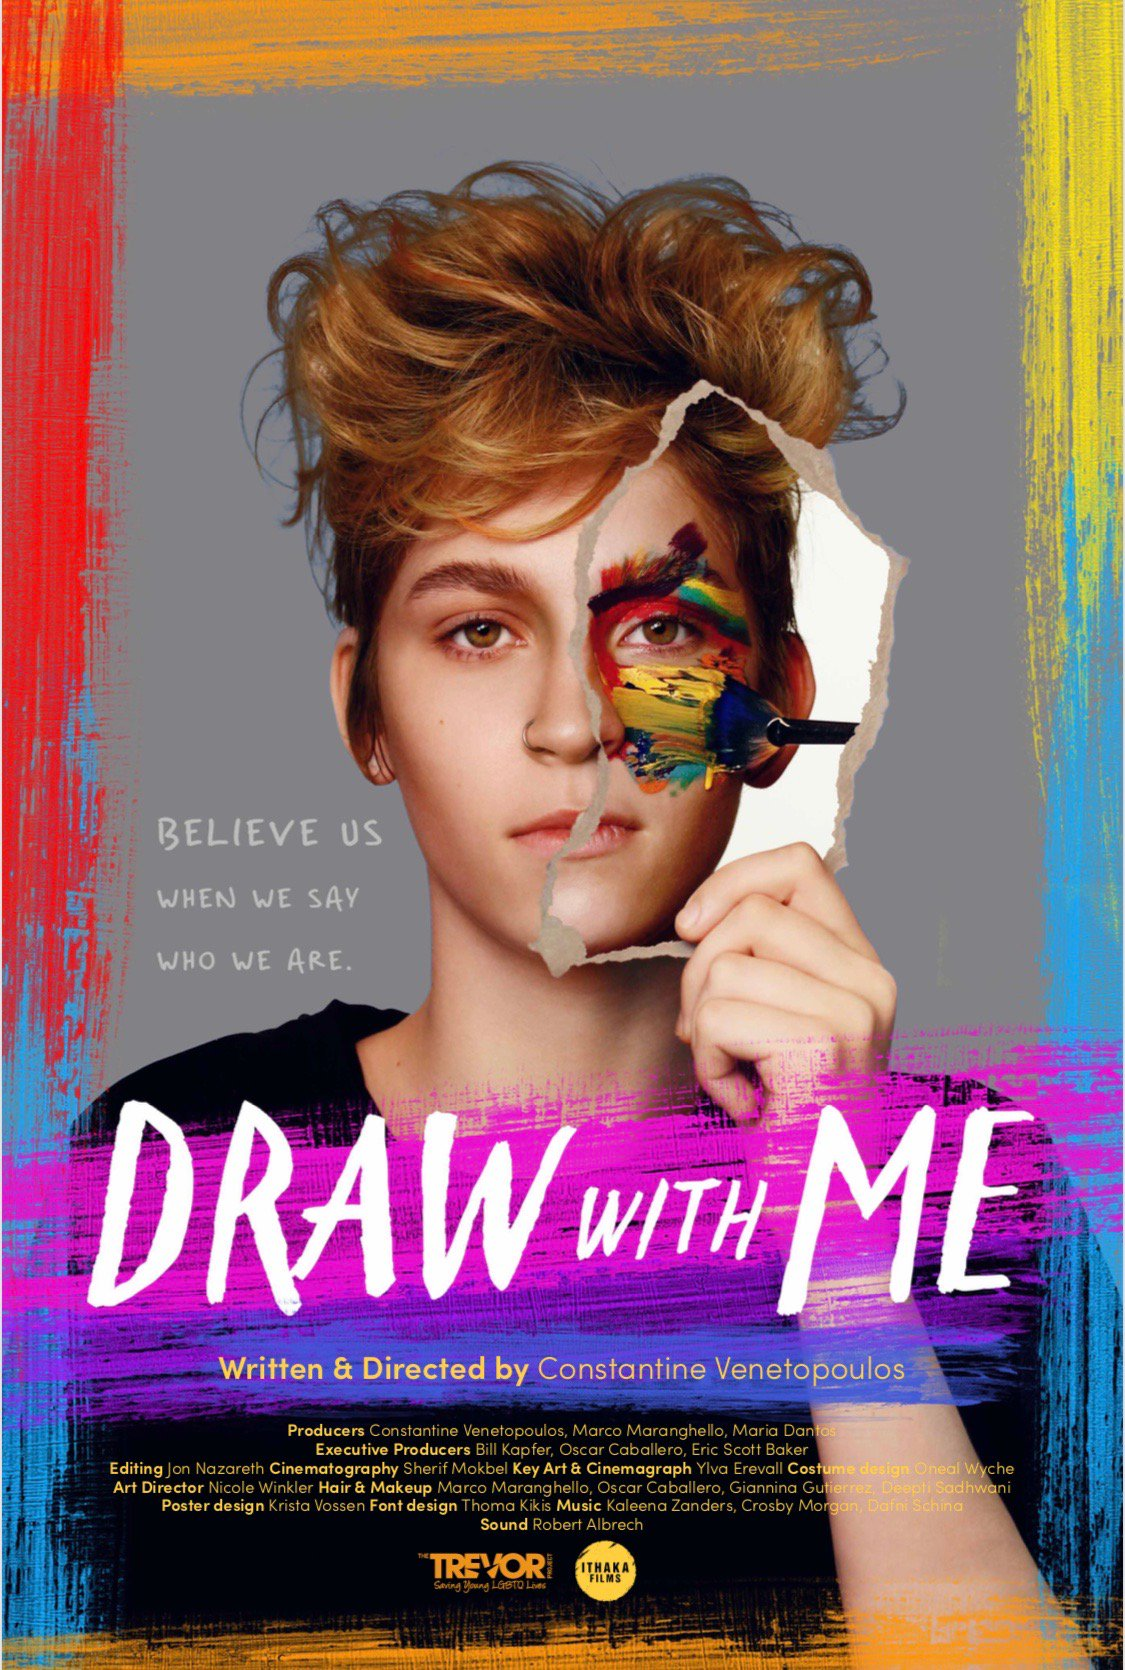 'Believe us when we say who we are'.�� #drawfortrevor #thetrevorproject  #ithakafilms https://t.co/0DI5bMO5so